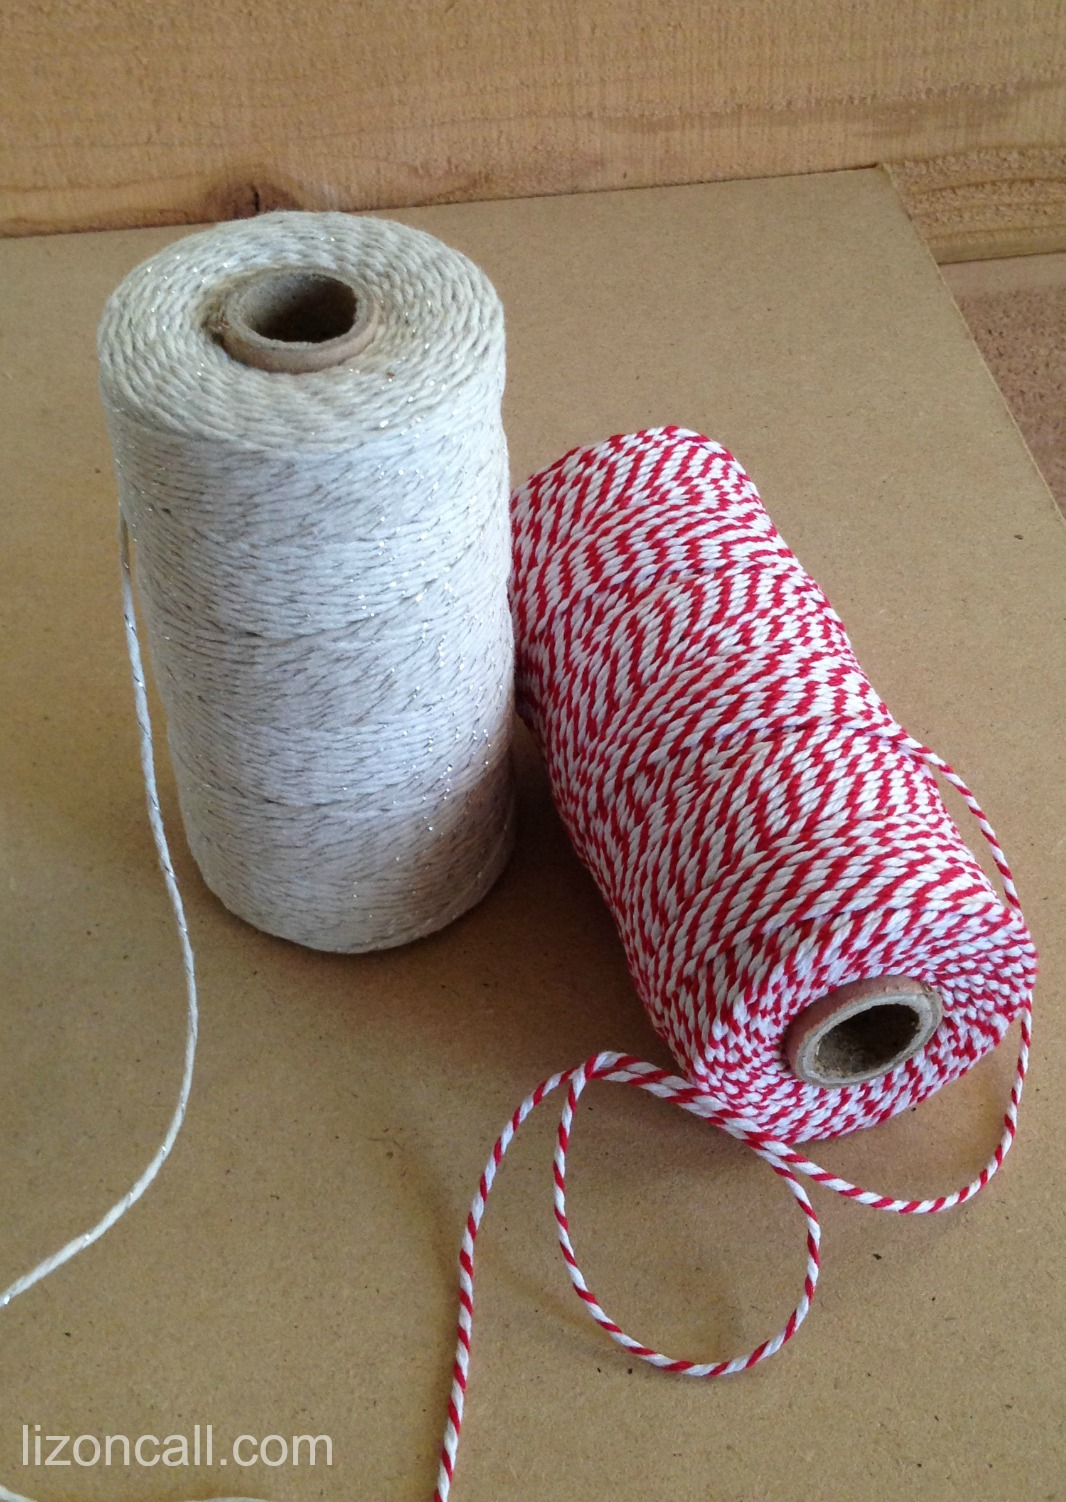 I use bakers twine for so many things. It is a great gift for a teacher!